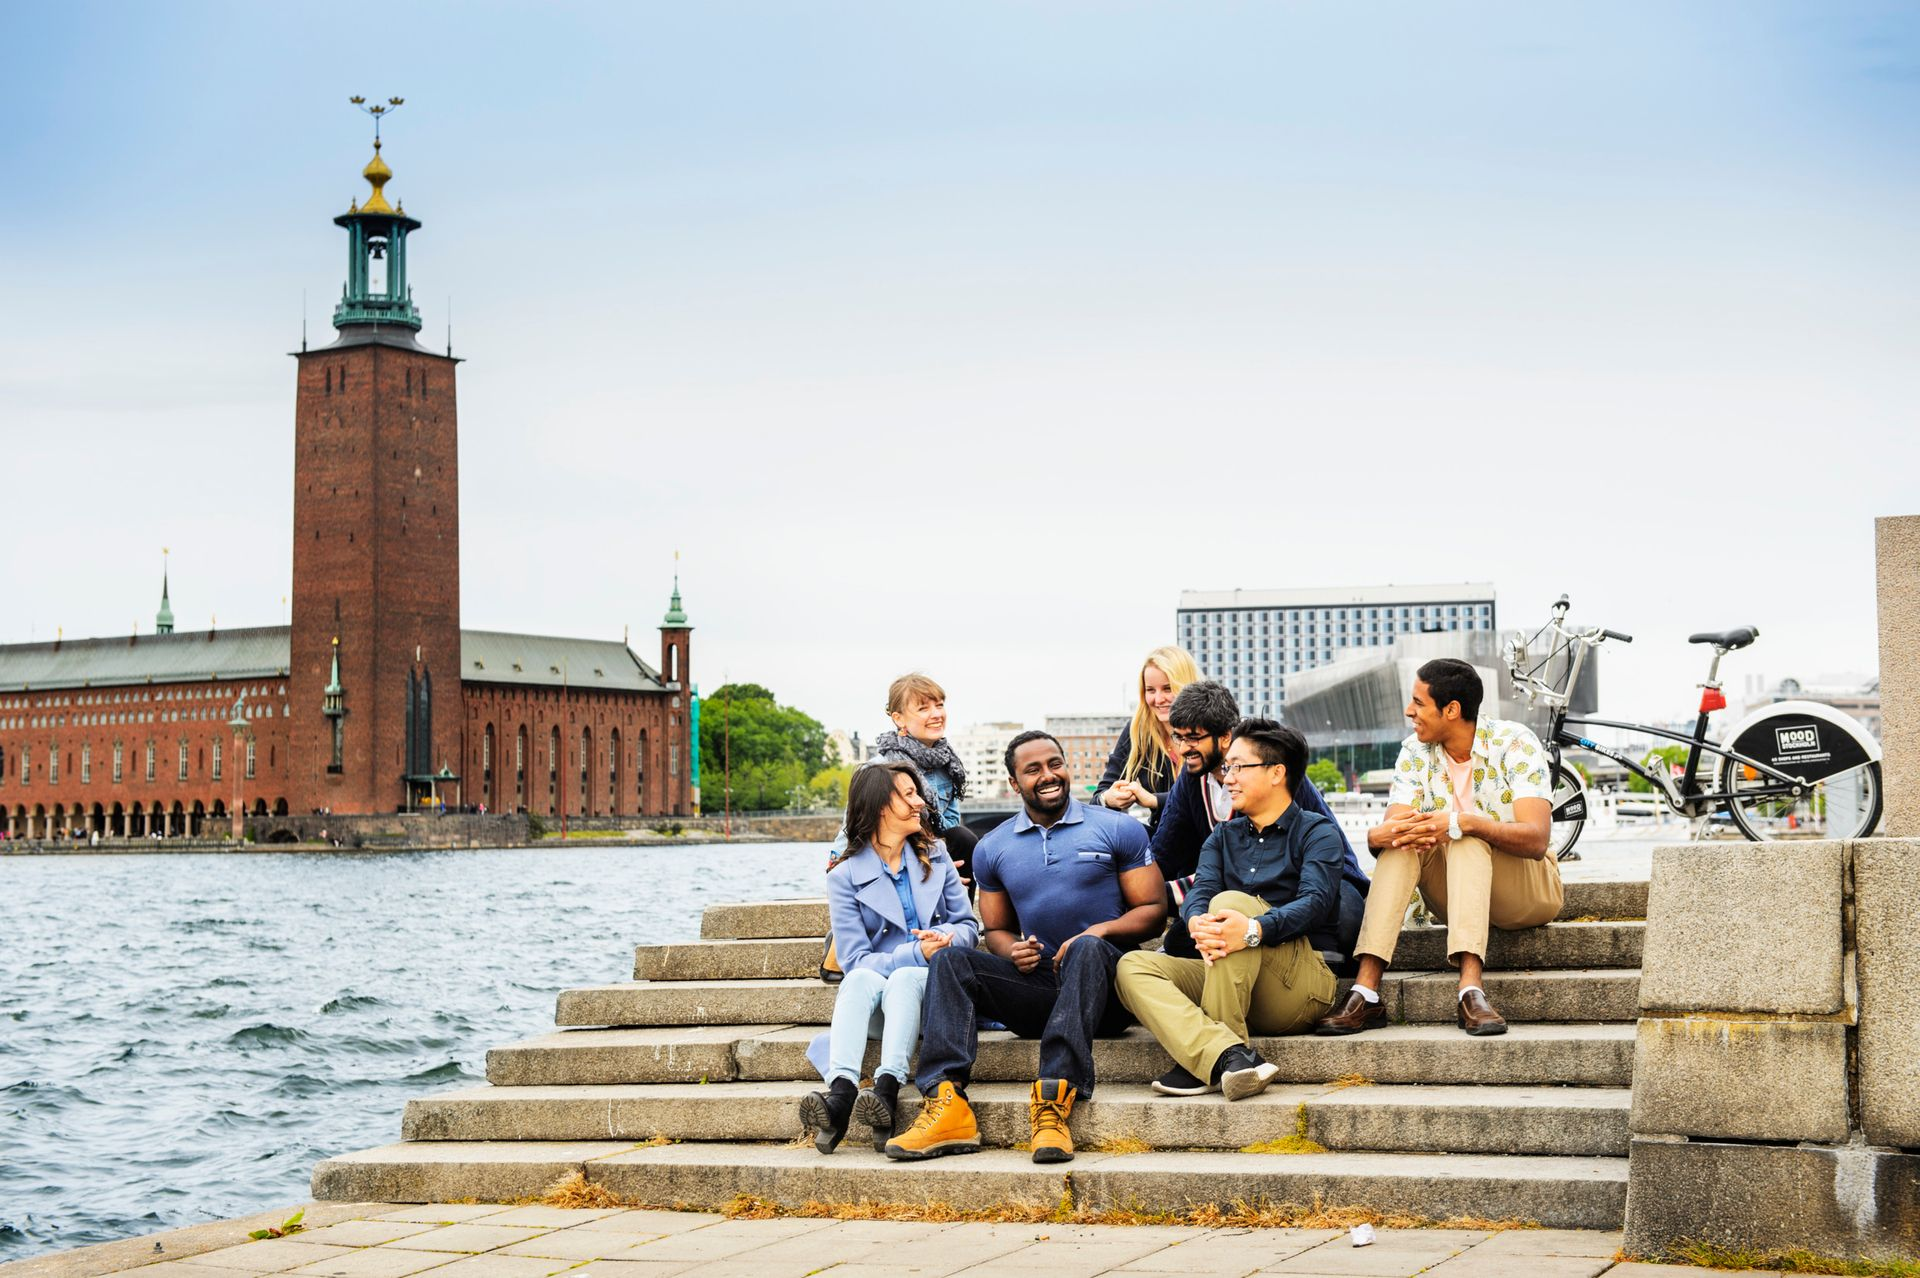 A group of students sitting on stairs, with the Stockholm City Hall in the background.